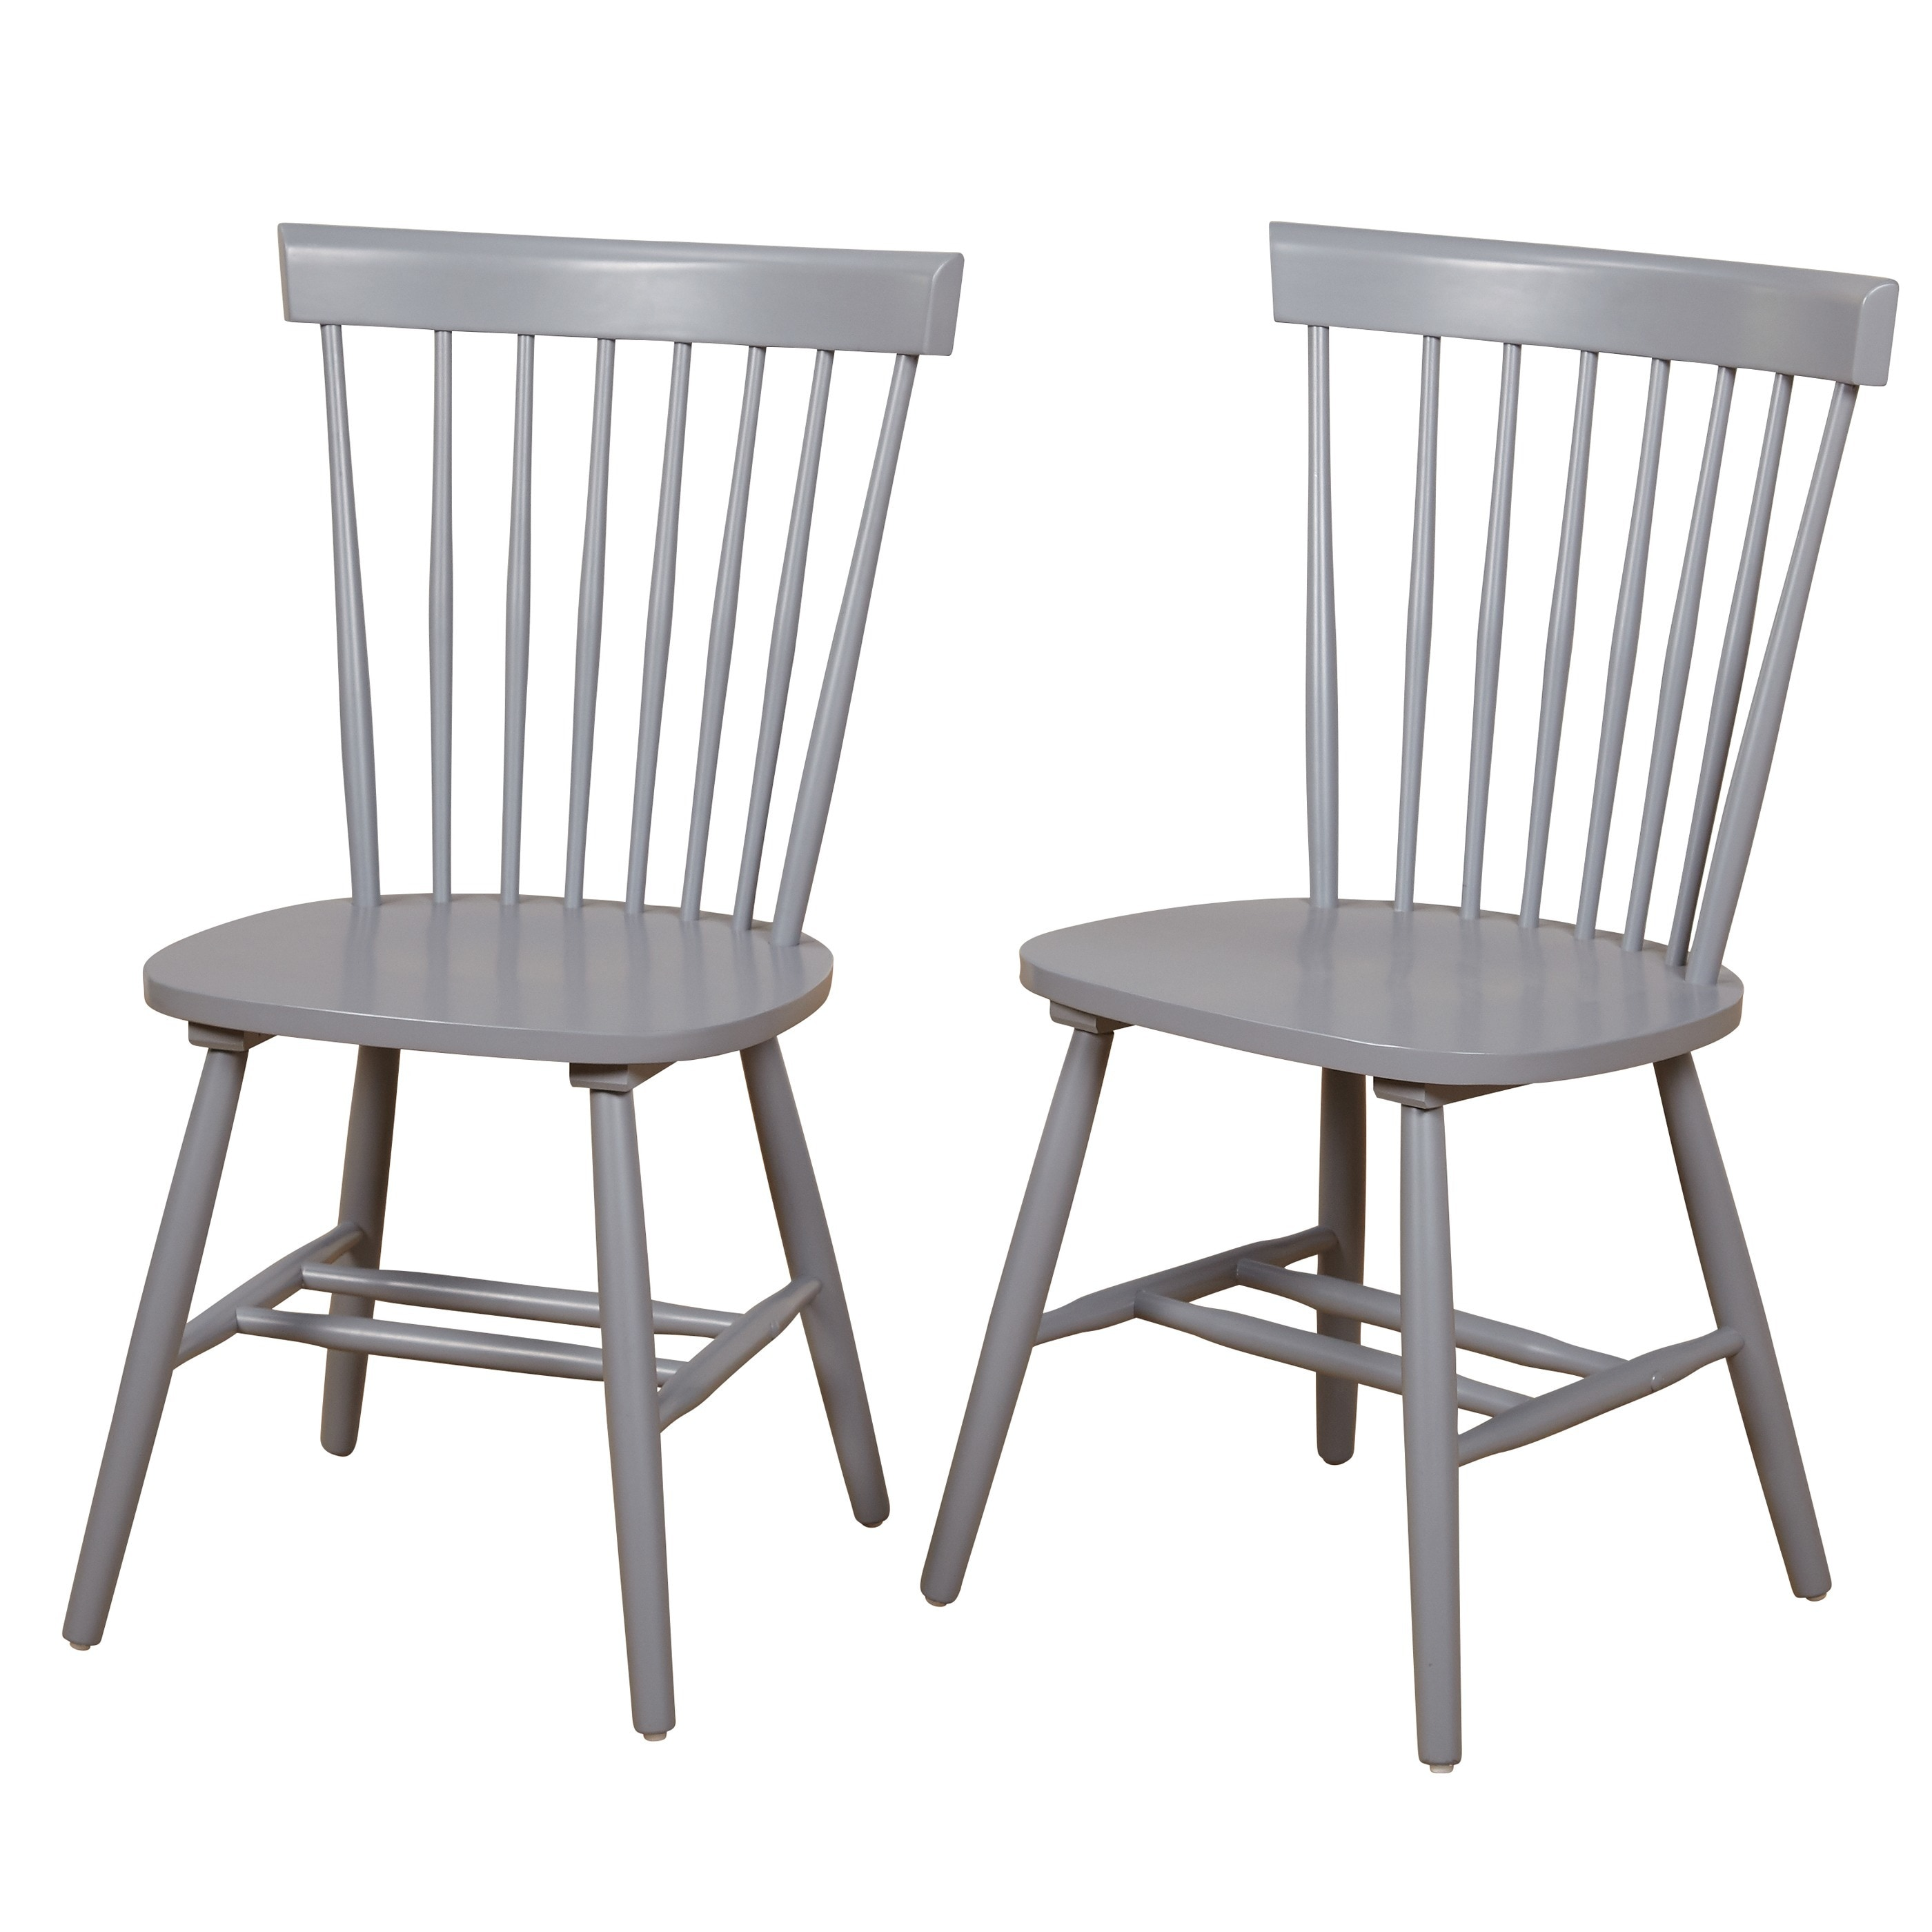 Windsor Chairs Black Simple Living Venice Dining Chairs Set Of 2